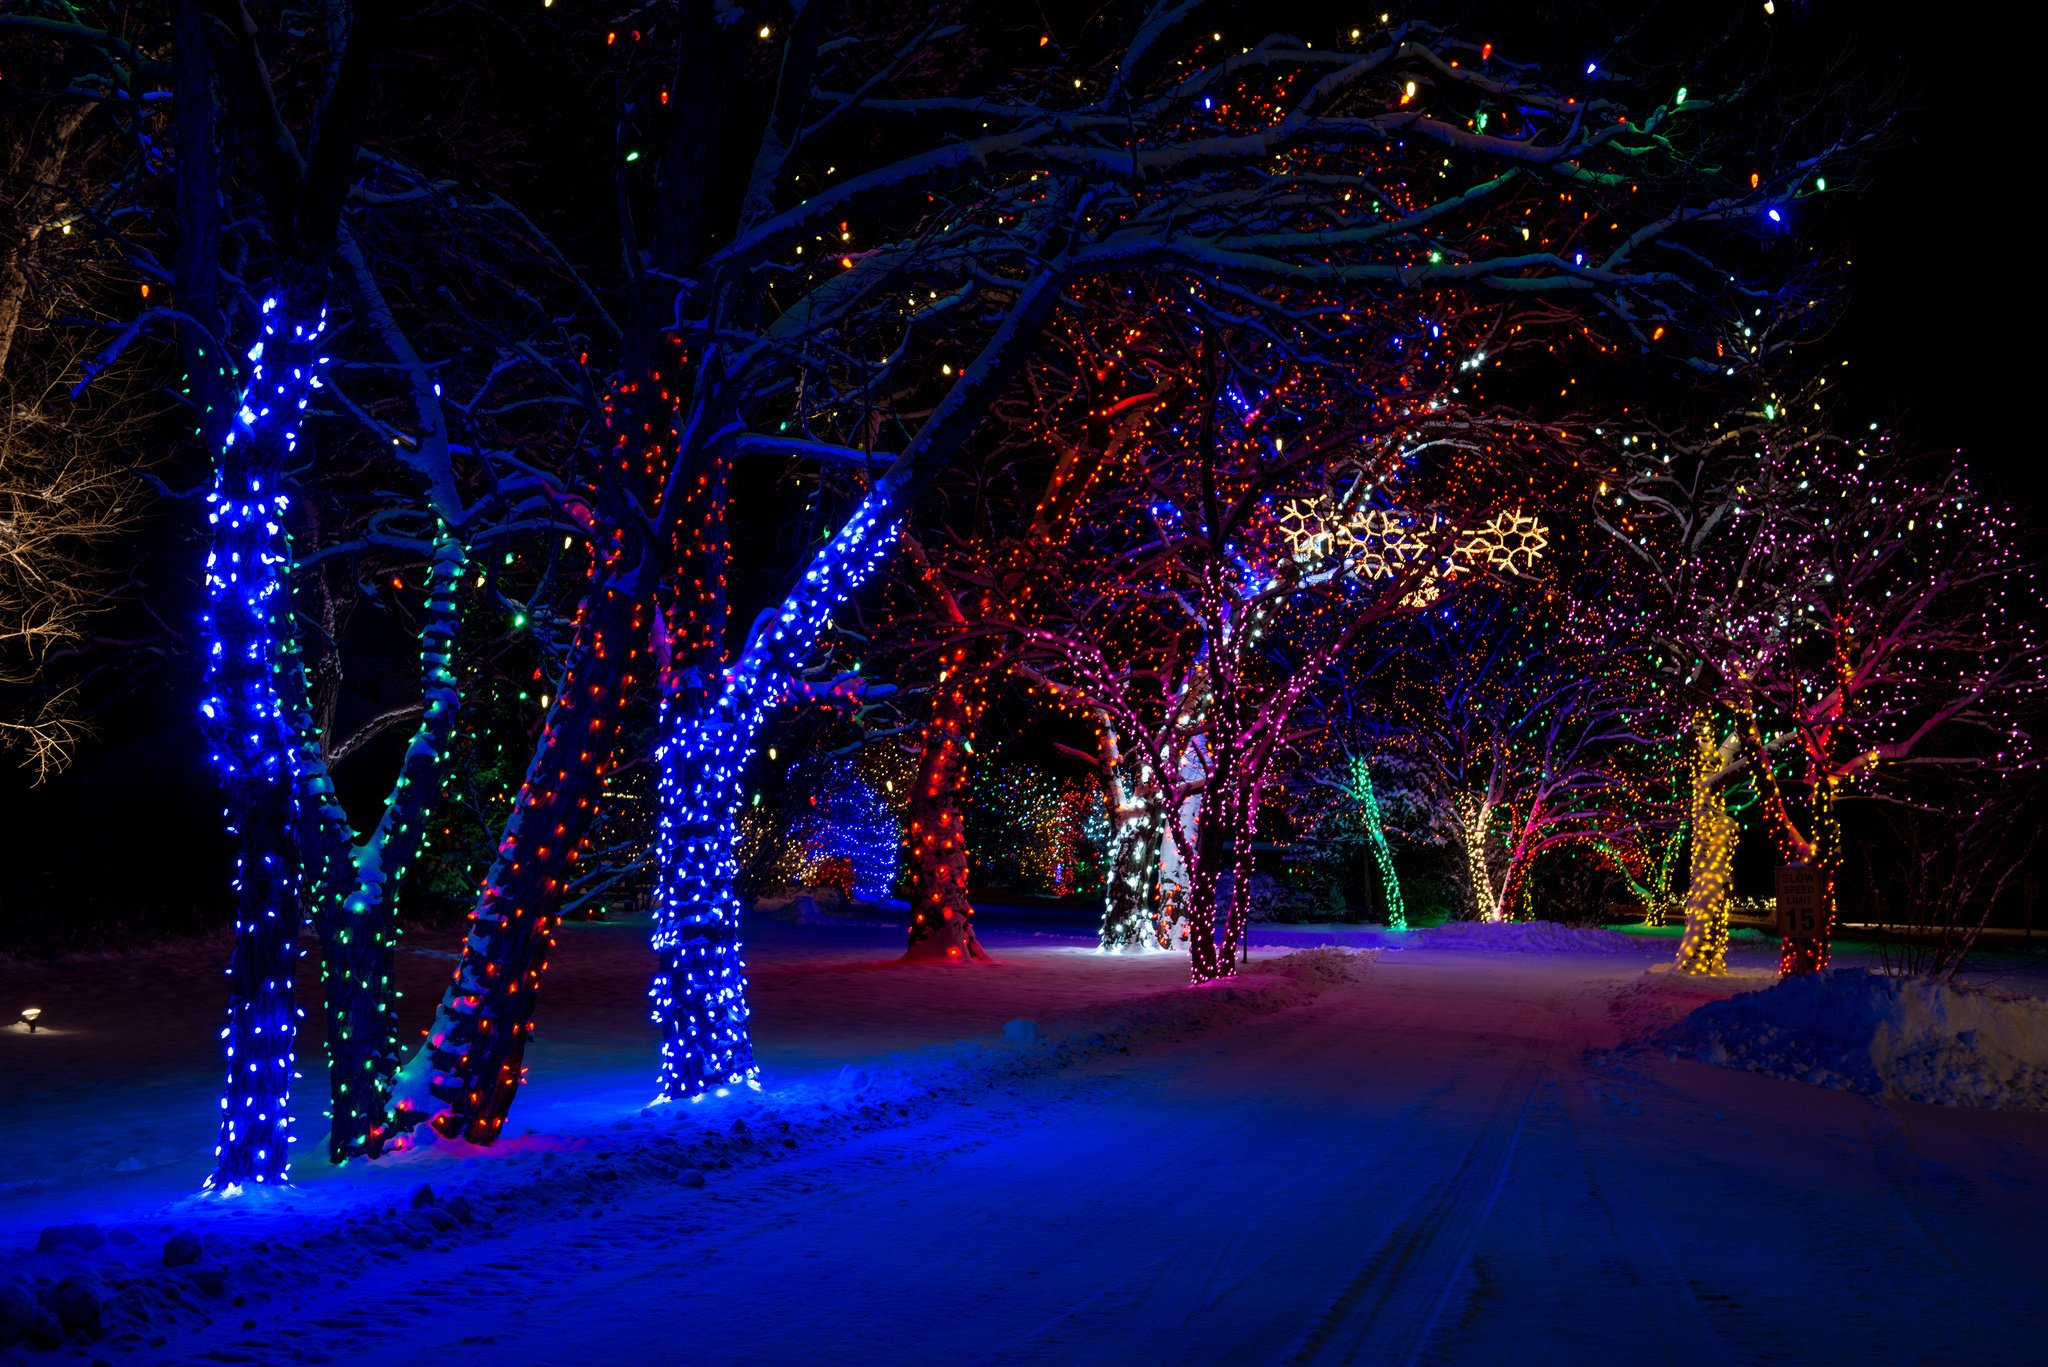 3d Snowy Cottage Animated Wallpaper Free Download Trees New Year Street Winter Snow Light Wallpaper